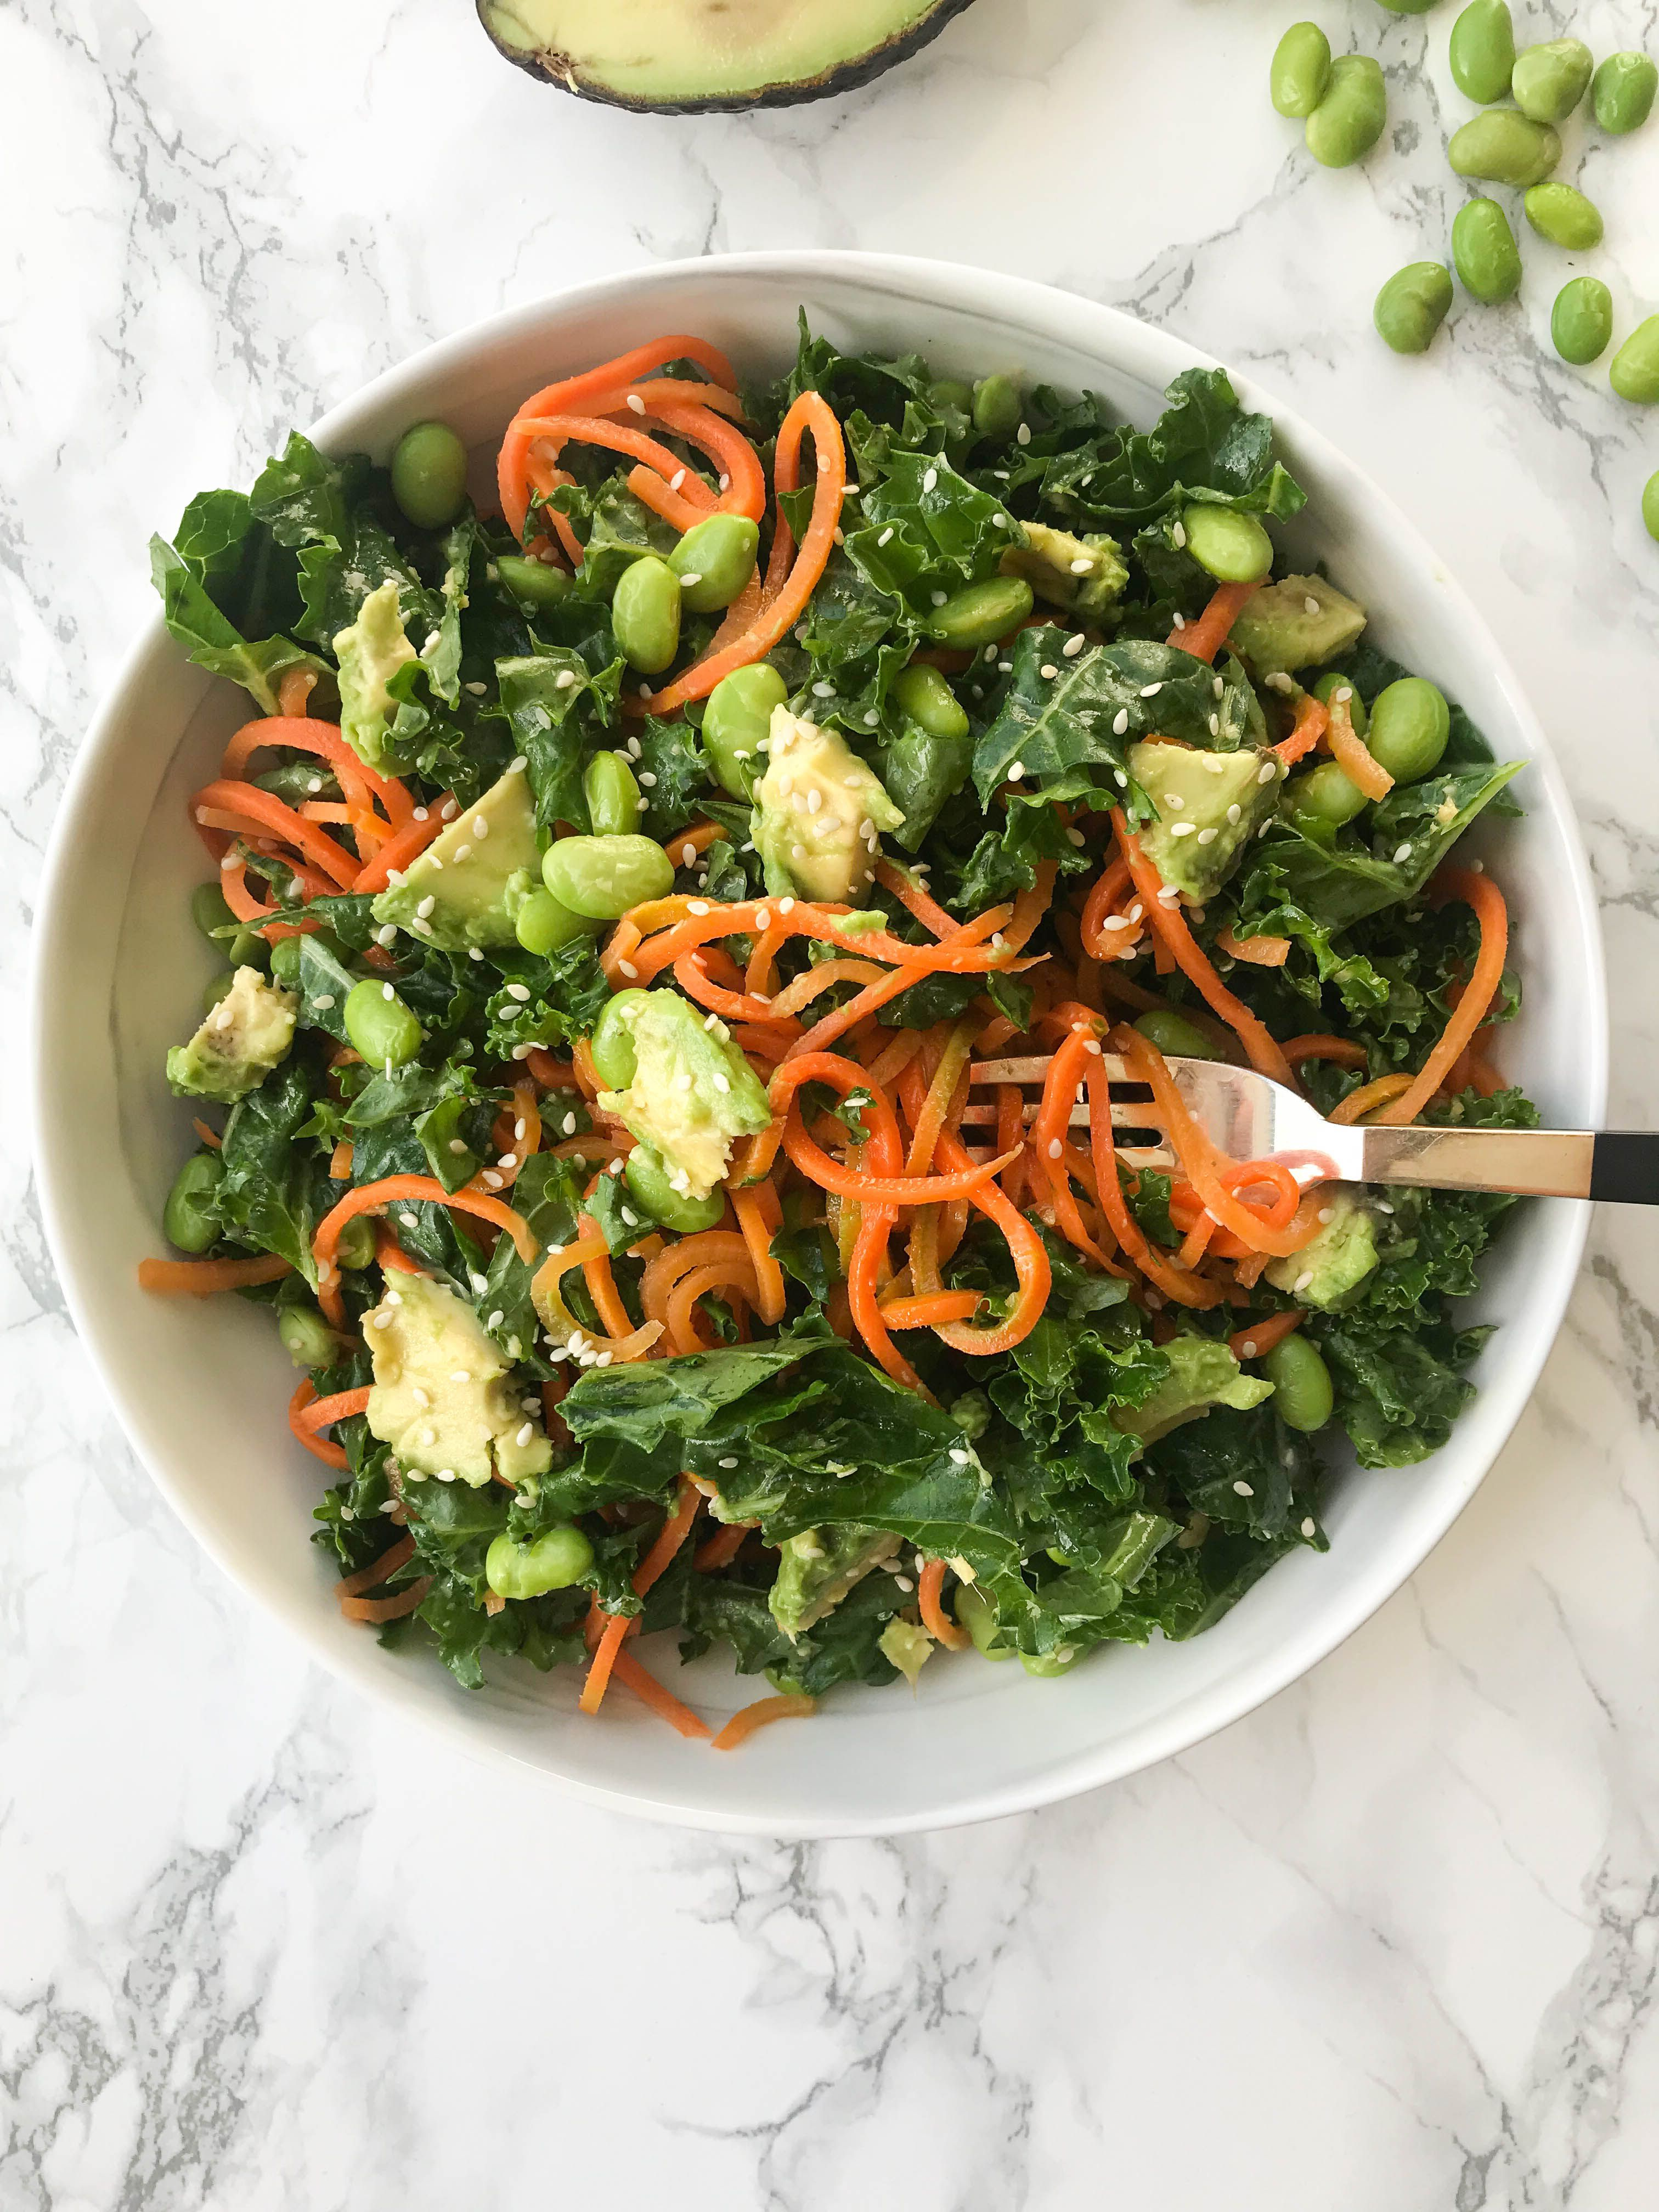 Kale Edamame And Carrot Noodle Salad With Ginger Sesame Sauce